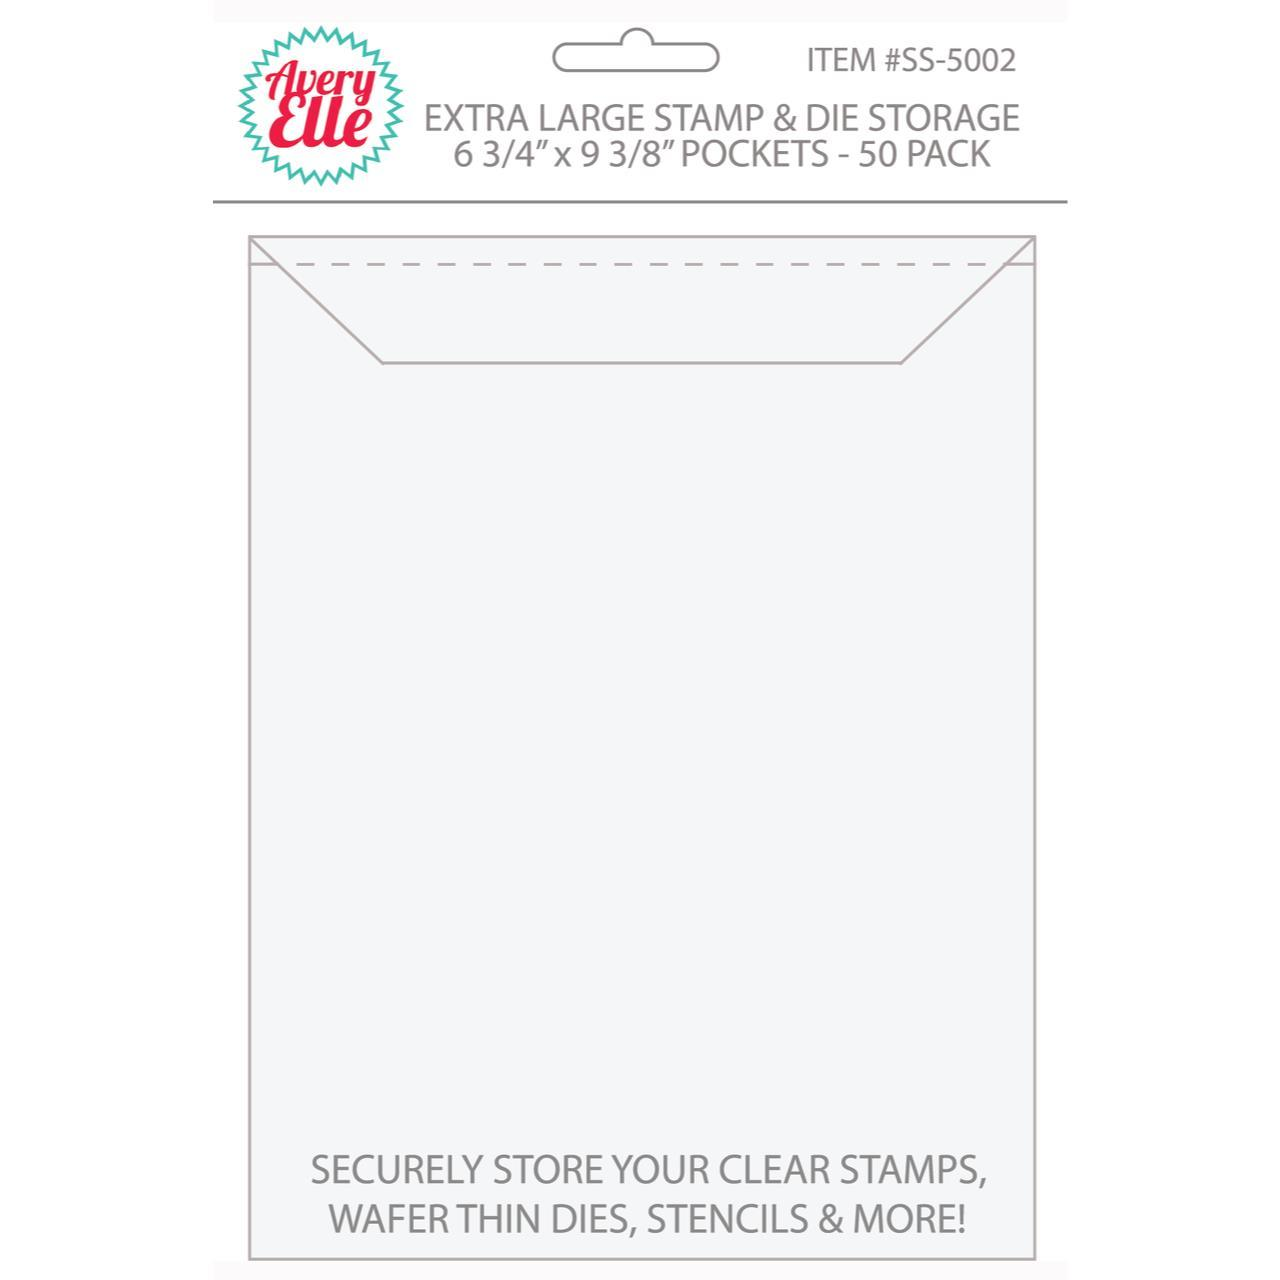 Avery Elle Stamp & Die Storage Pockets XL